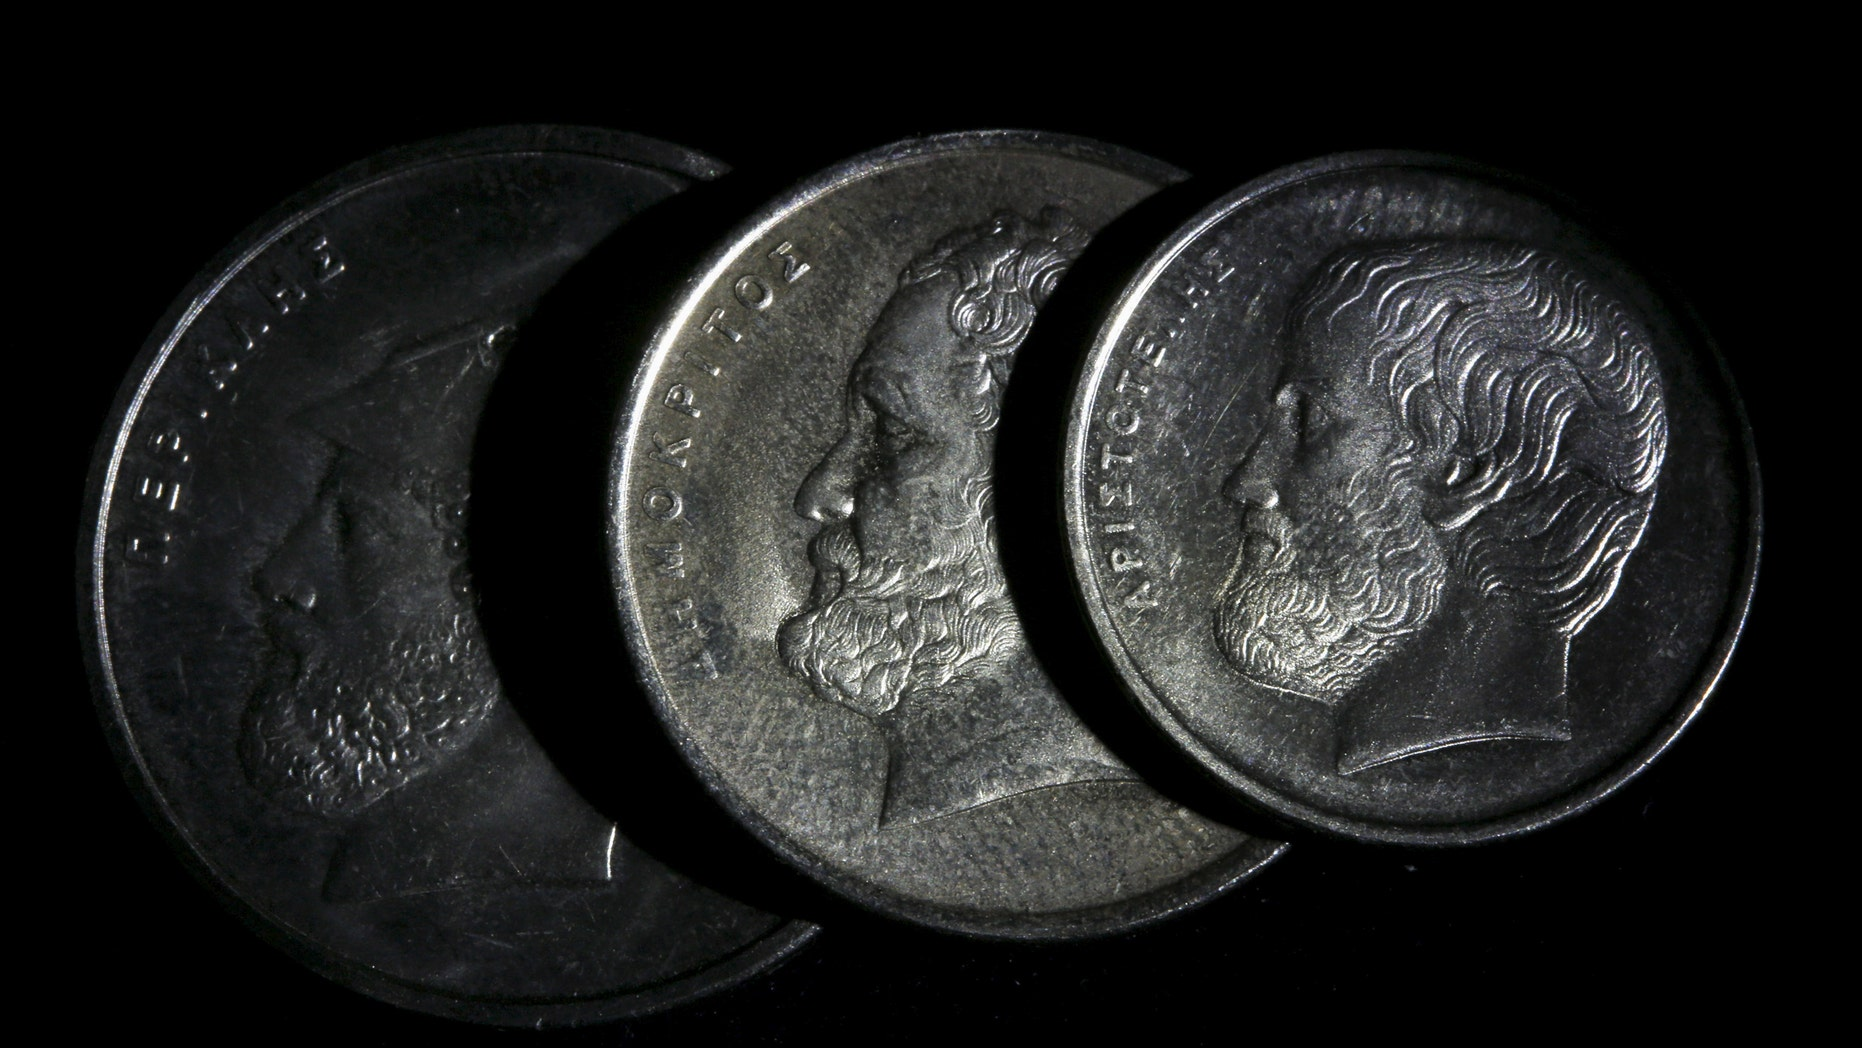 File photo - Ancient Greek philosopher Aristotle (L), philosopher and scientist Democritus (C) and Athenian politician and general Pericles are depicted on Greek Drachma coins in this picture illustration taken in Athens March 22, 2015. (REUTERS/Yannis Behrakis)